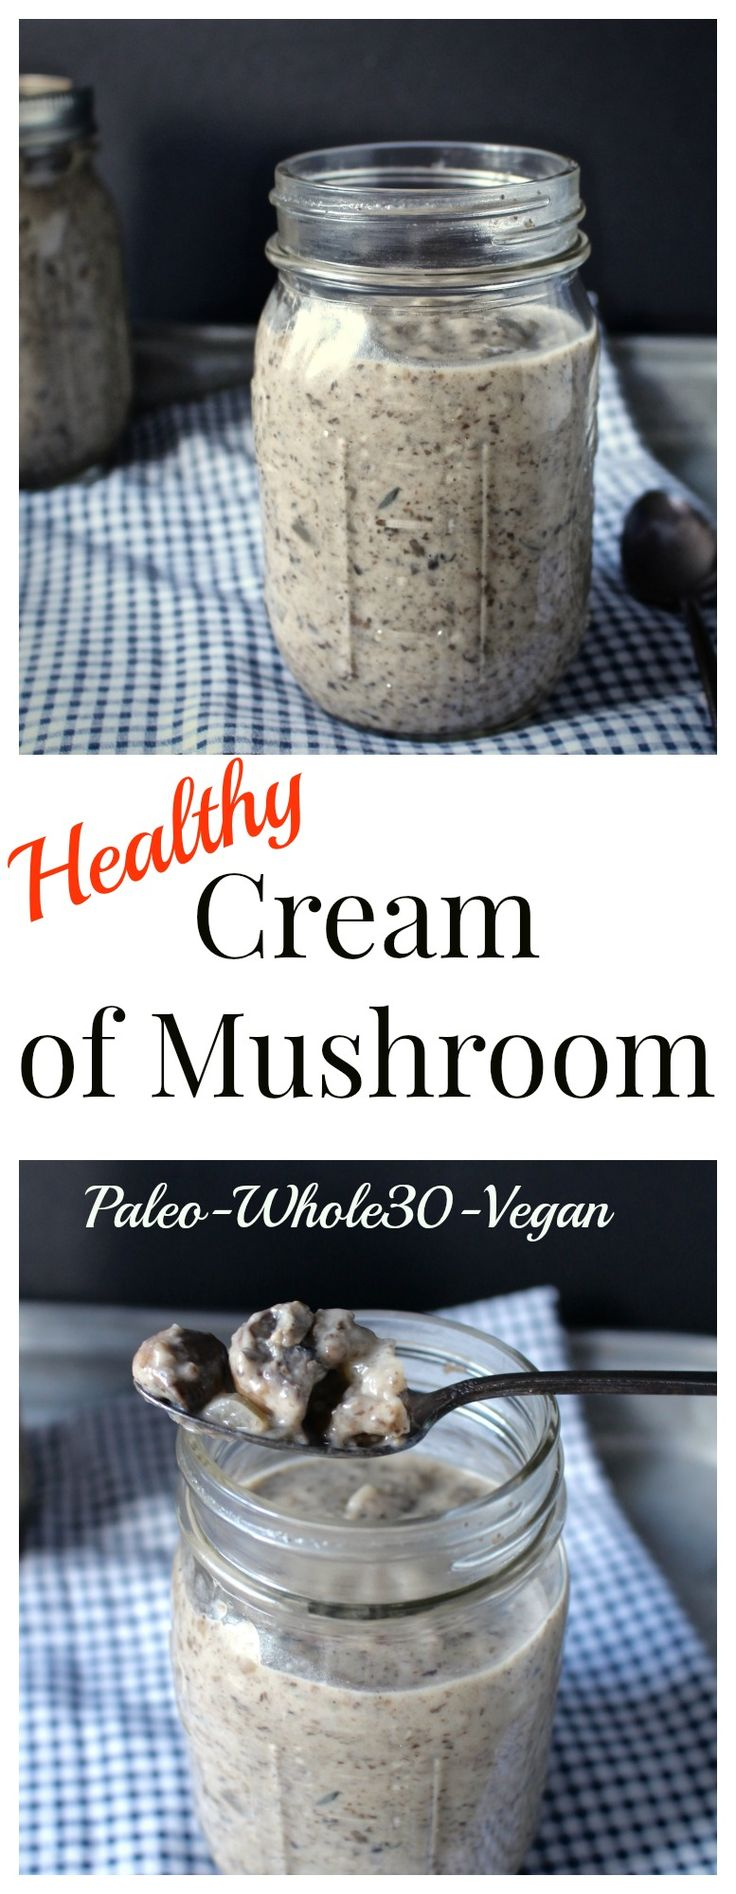 Healthy Cream of Mushroom - Tried and approved l!